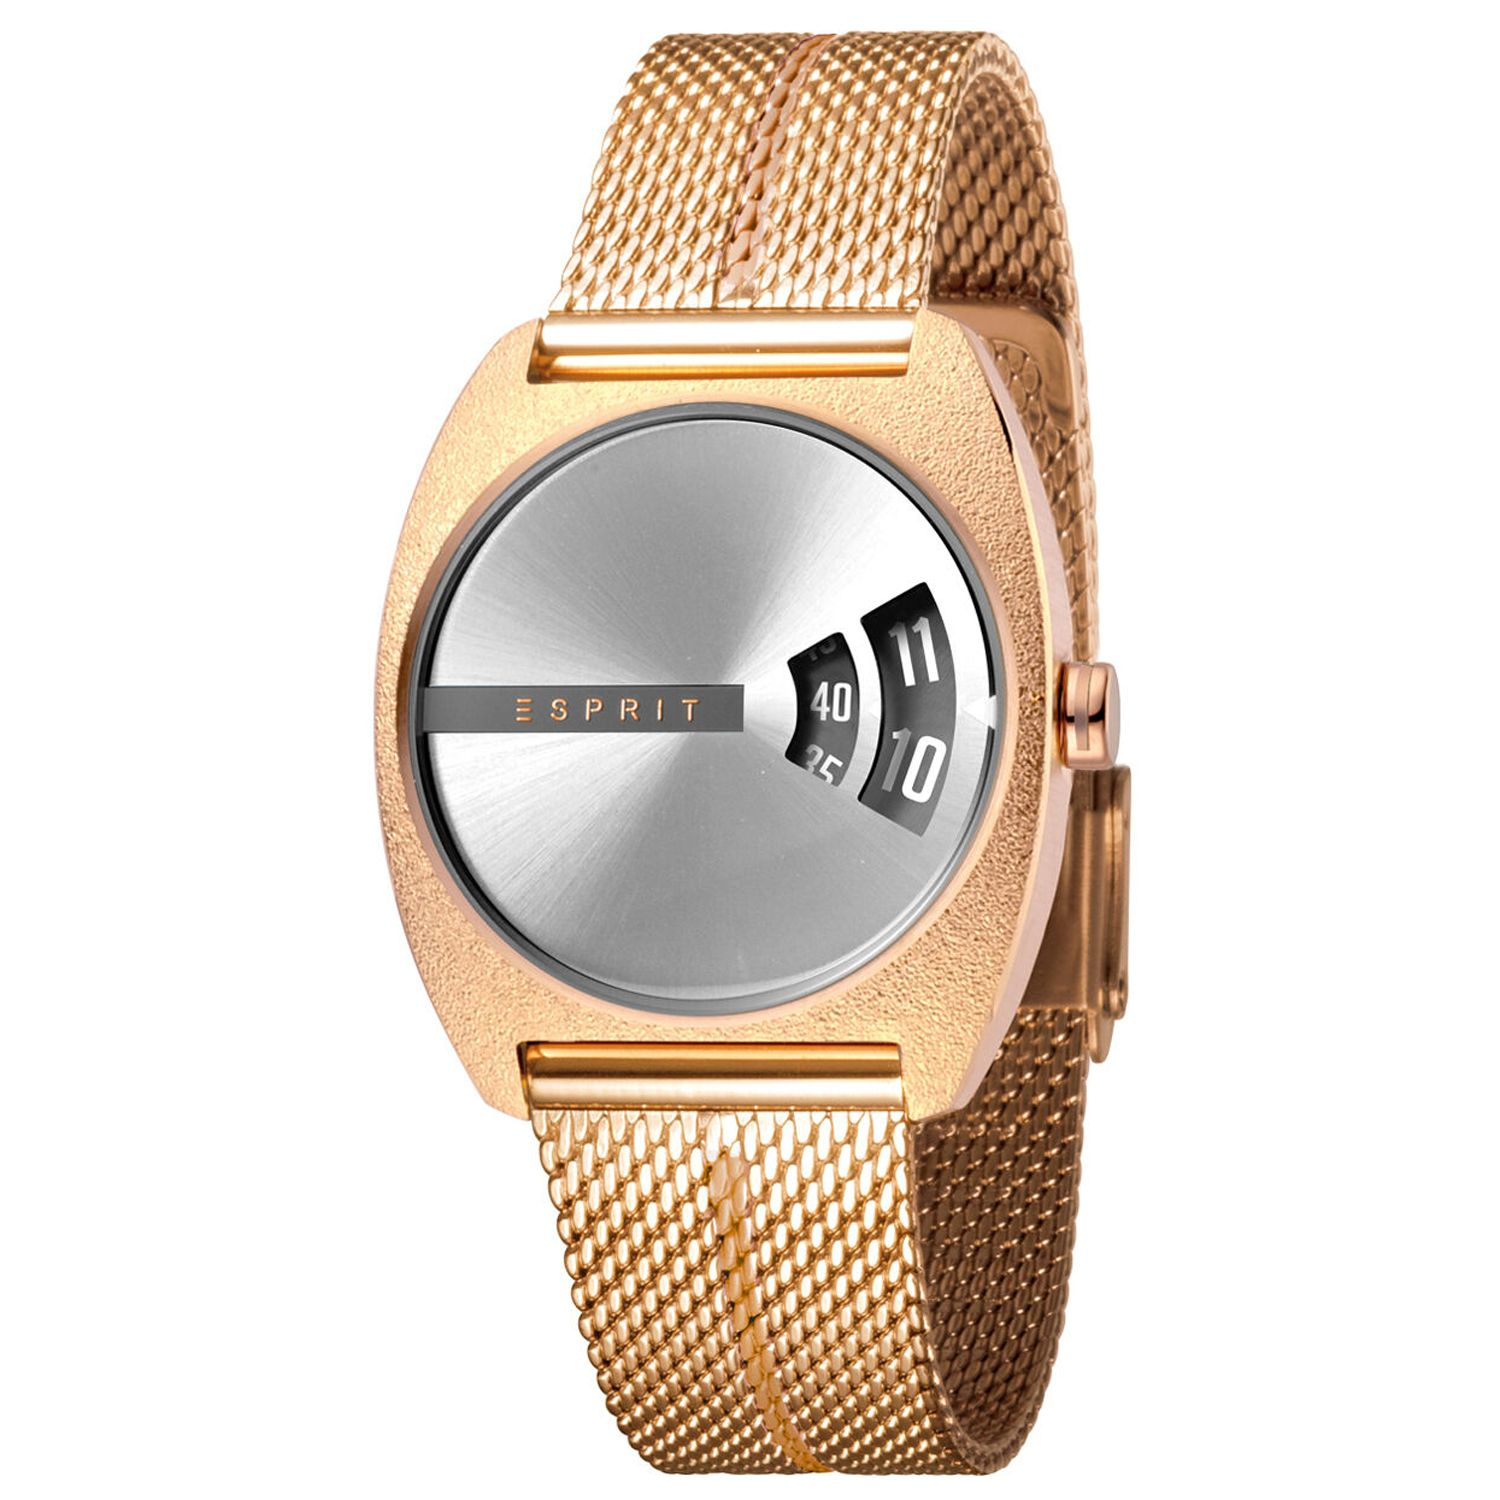 Esprit Watch ES1L036M0115 Women Rose Gold